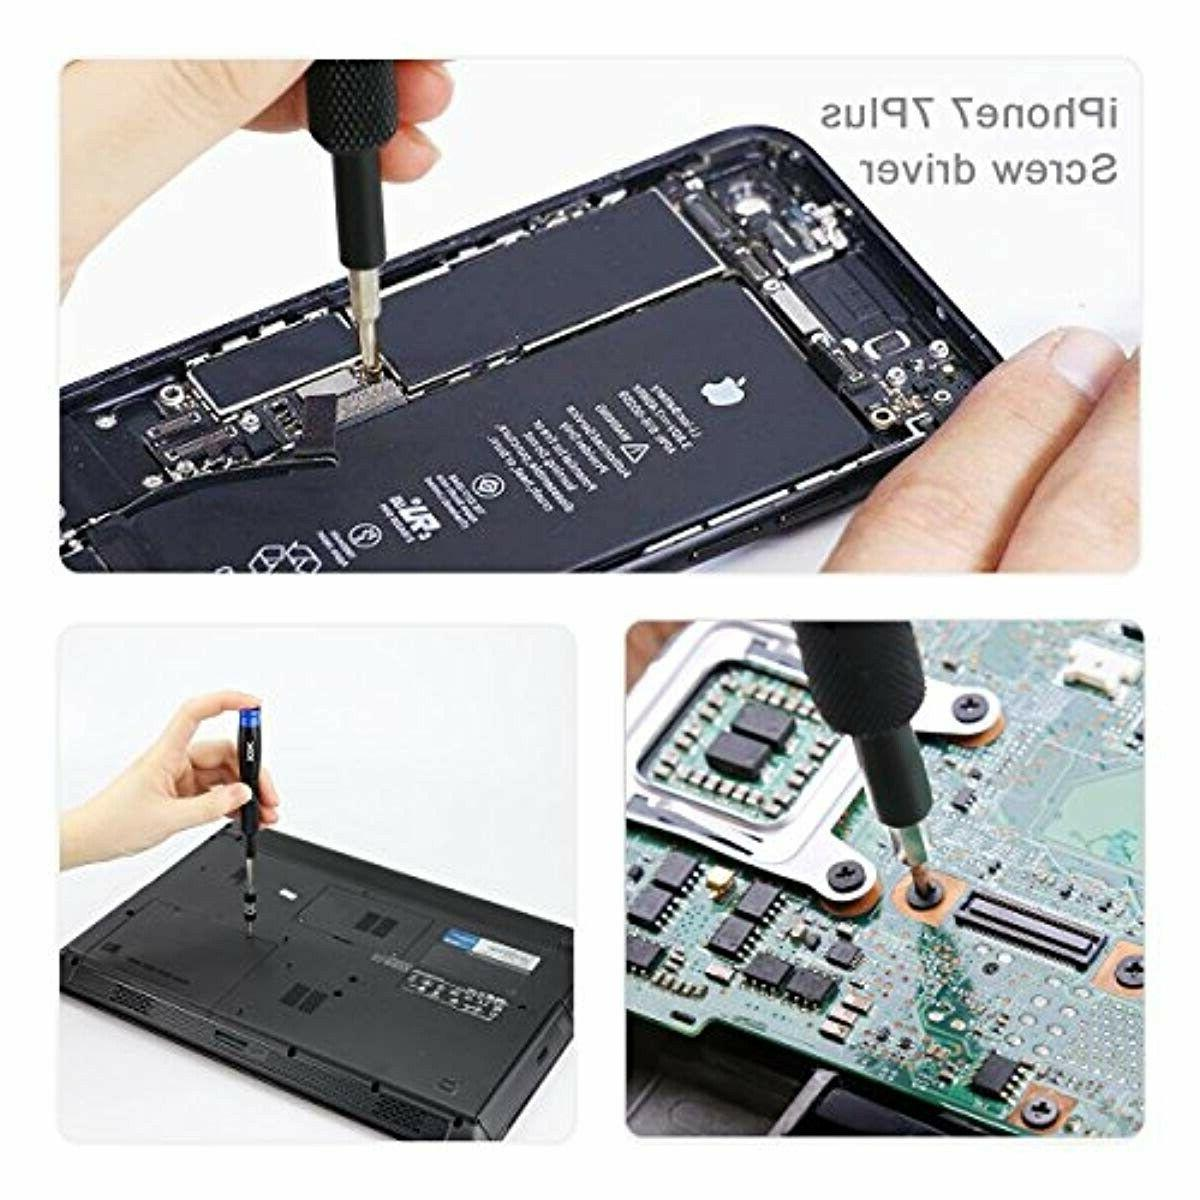 XOOL — Electronics, Smartphone, Tablet Repair